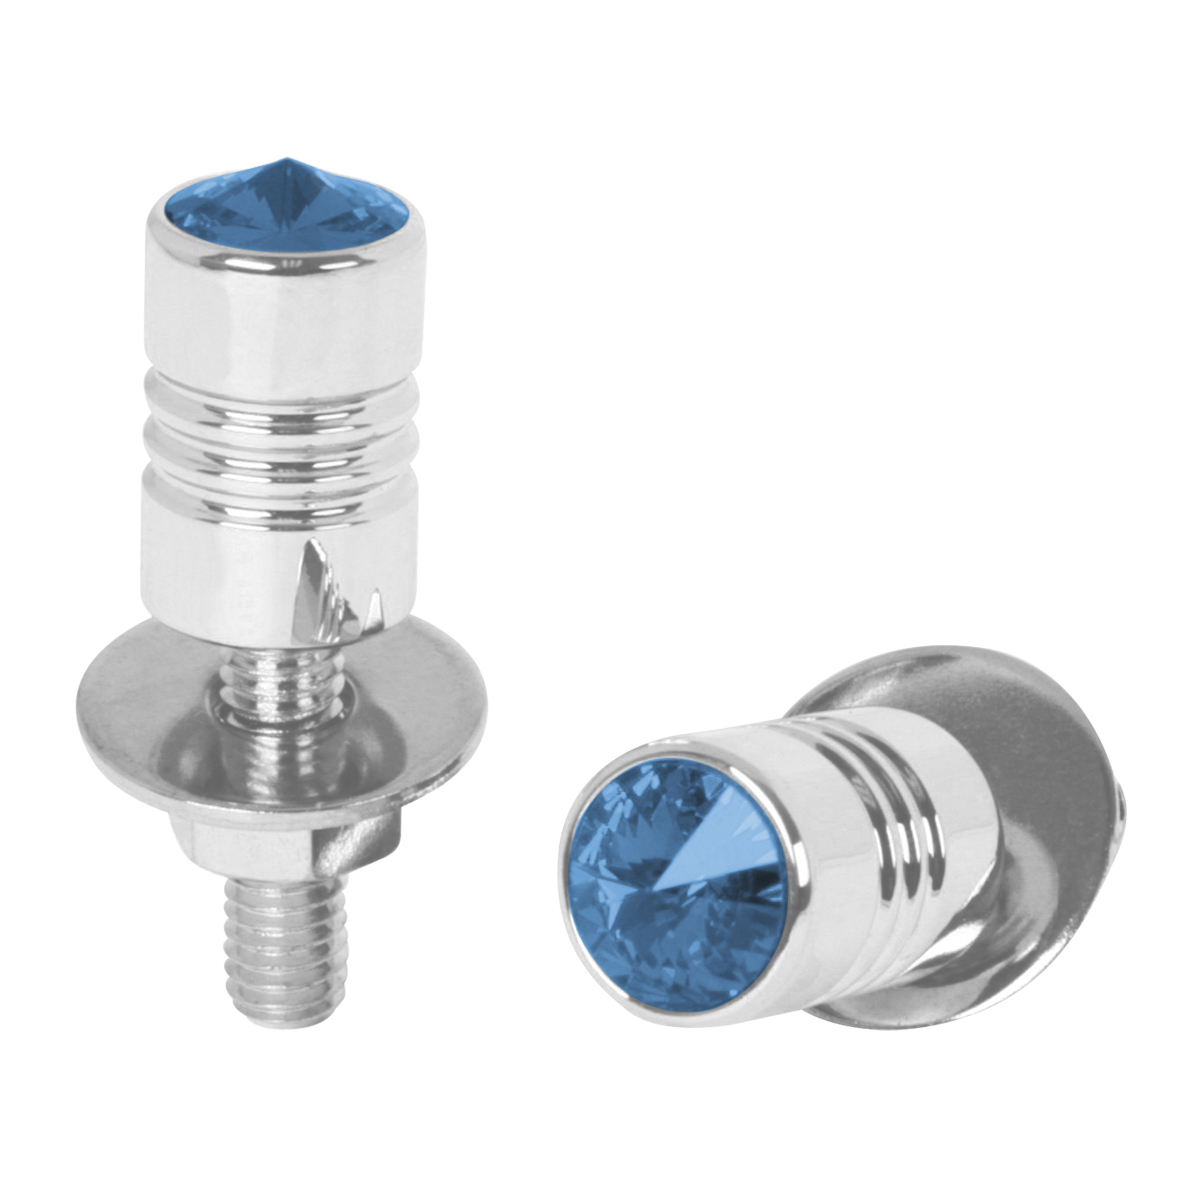 "½"" Dia. x 1 ½"" (H) Aluminum Fastener Set with Blue Crystal on Top"